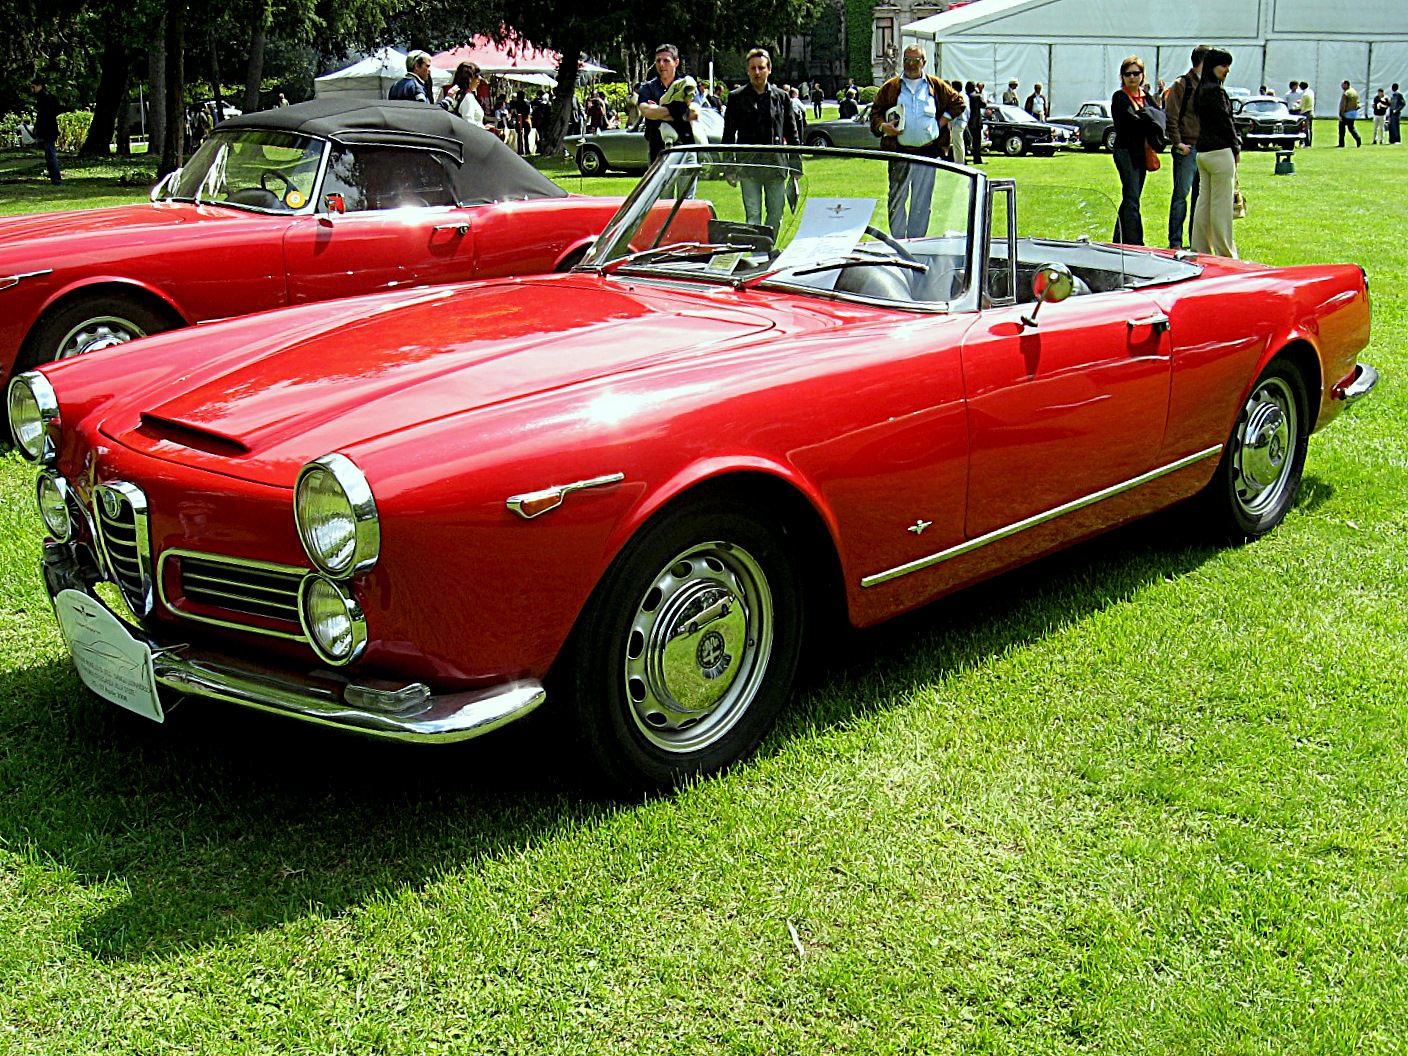 Phenomenal Alfa Romeo 2600 Wikipedia Wiring Cloud Pimpapsuggs Outletorg